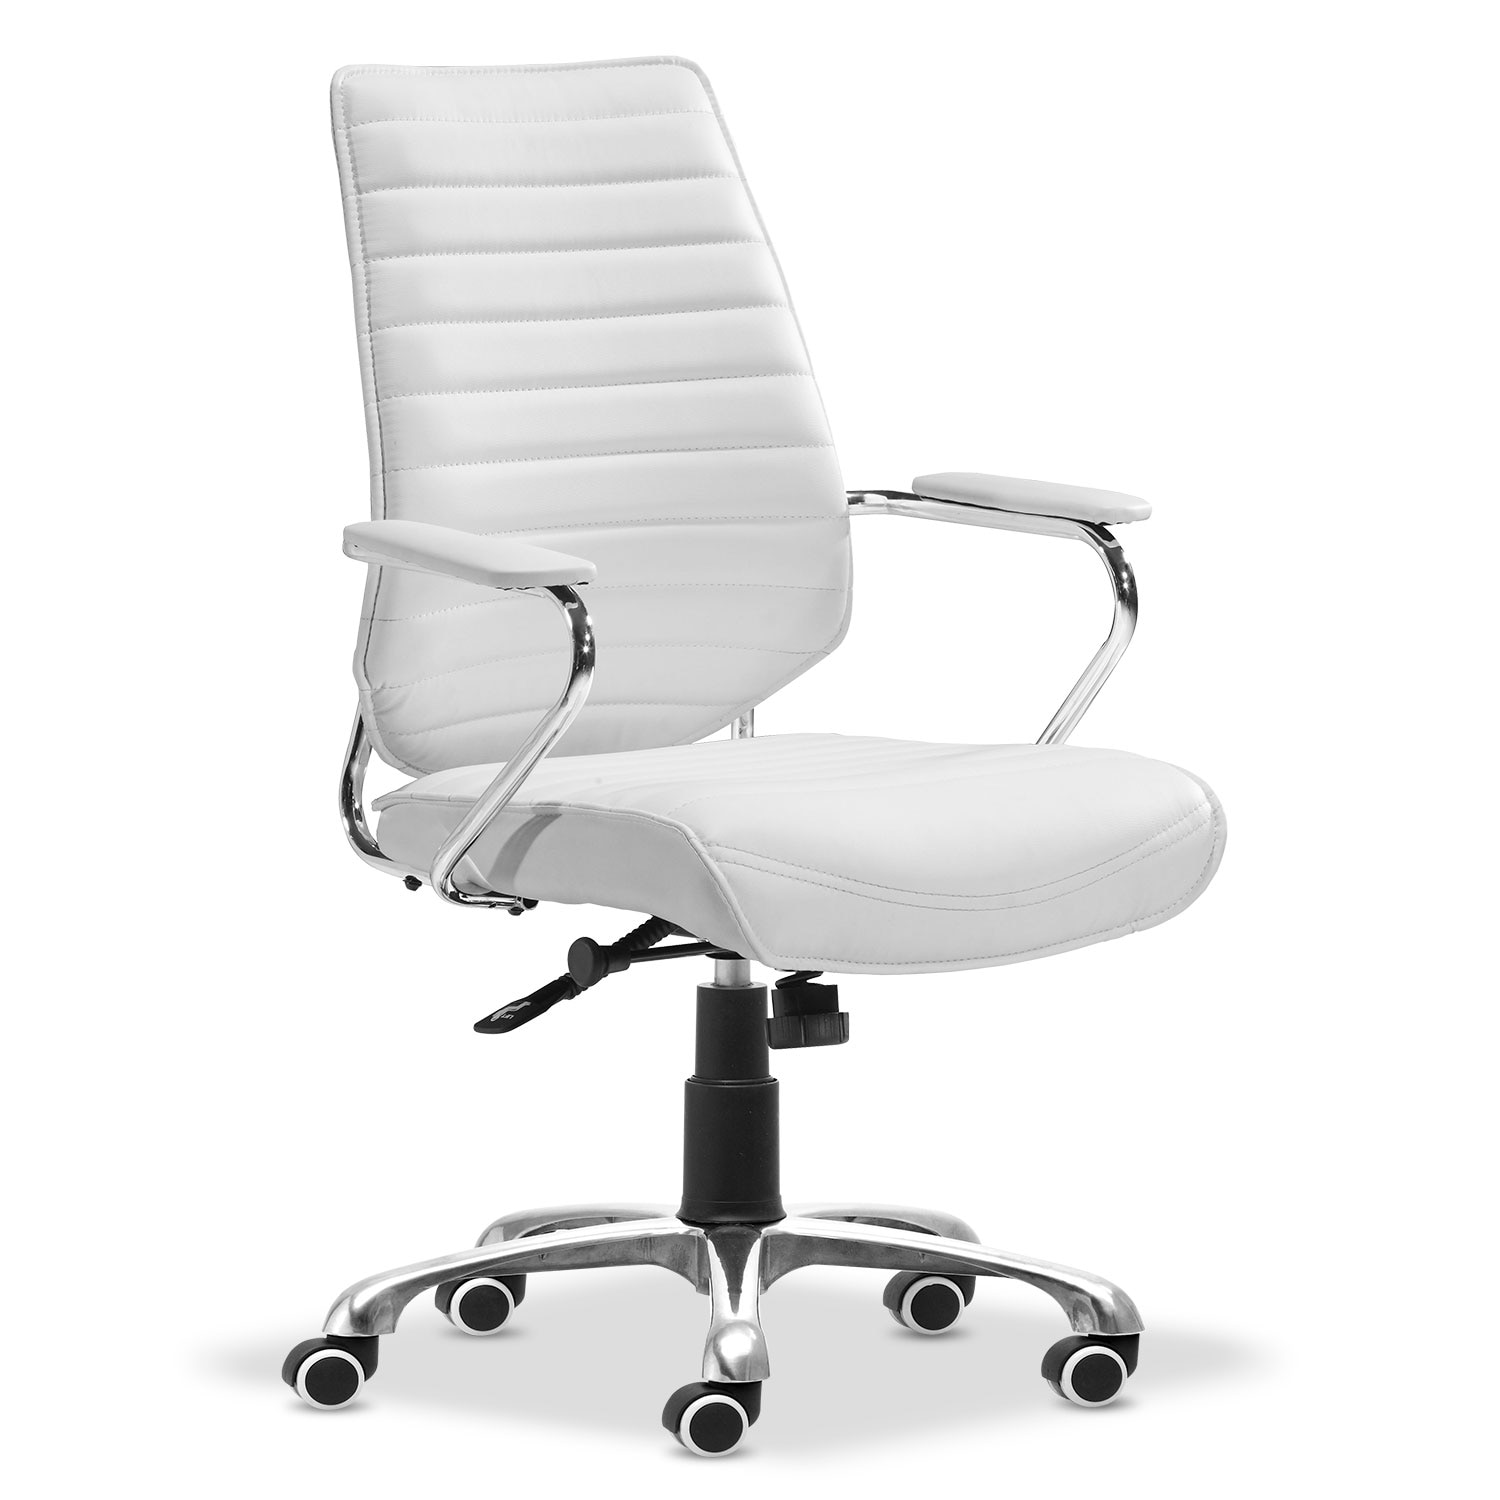 Home Office Furniture - Graham Office Arm Chair - White